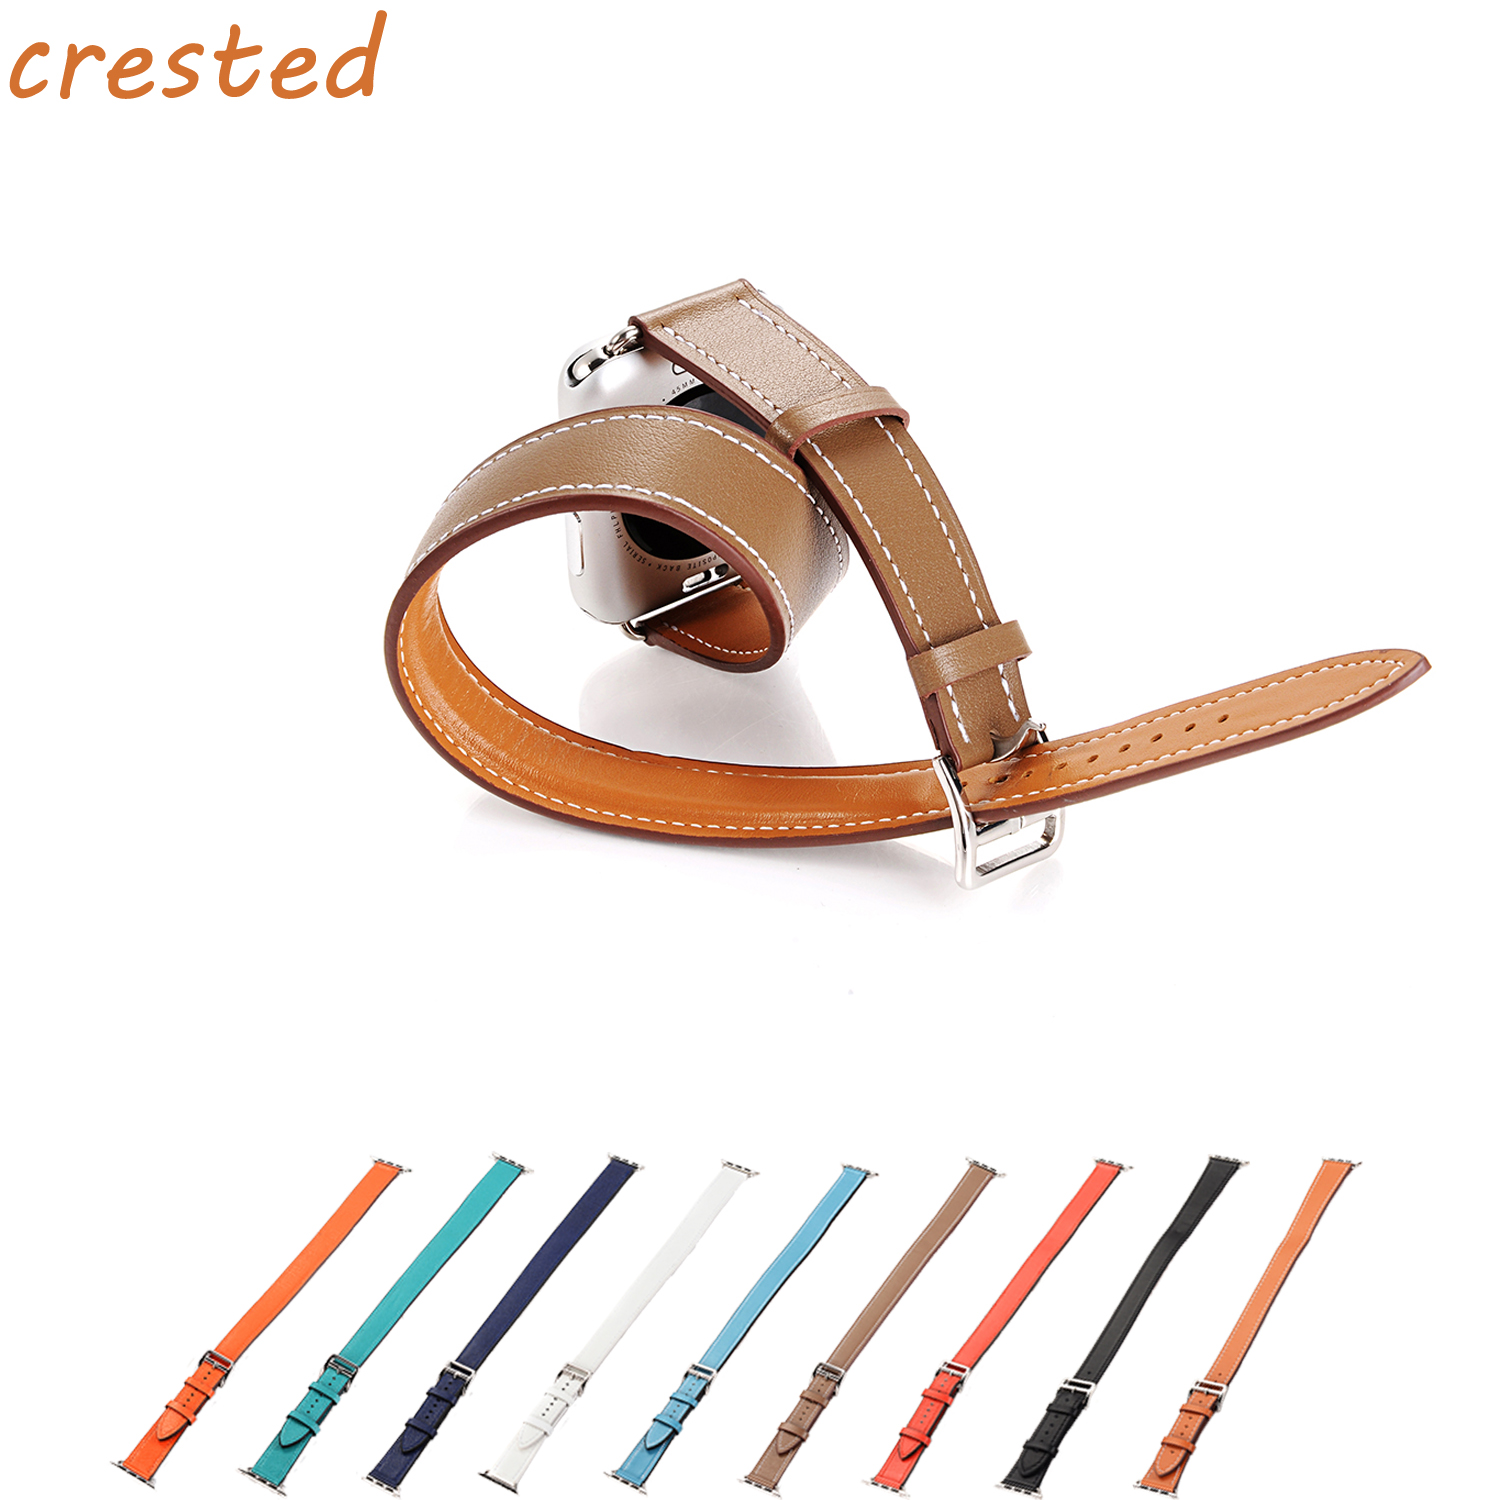 купить CRESTED Genuine leather band for apple watch 3 42mm/38mm iwatch serise3/2/1 Double tour Lit Leather wrist band bracelet strap по цене 813.54 рублей